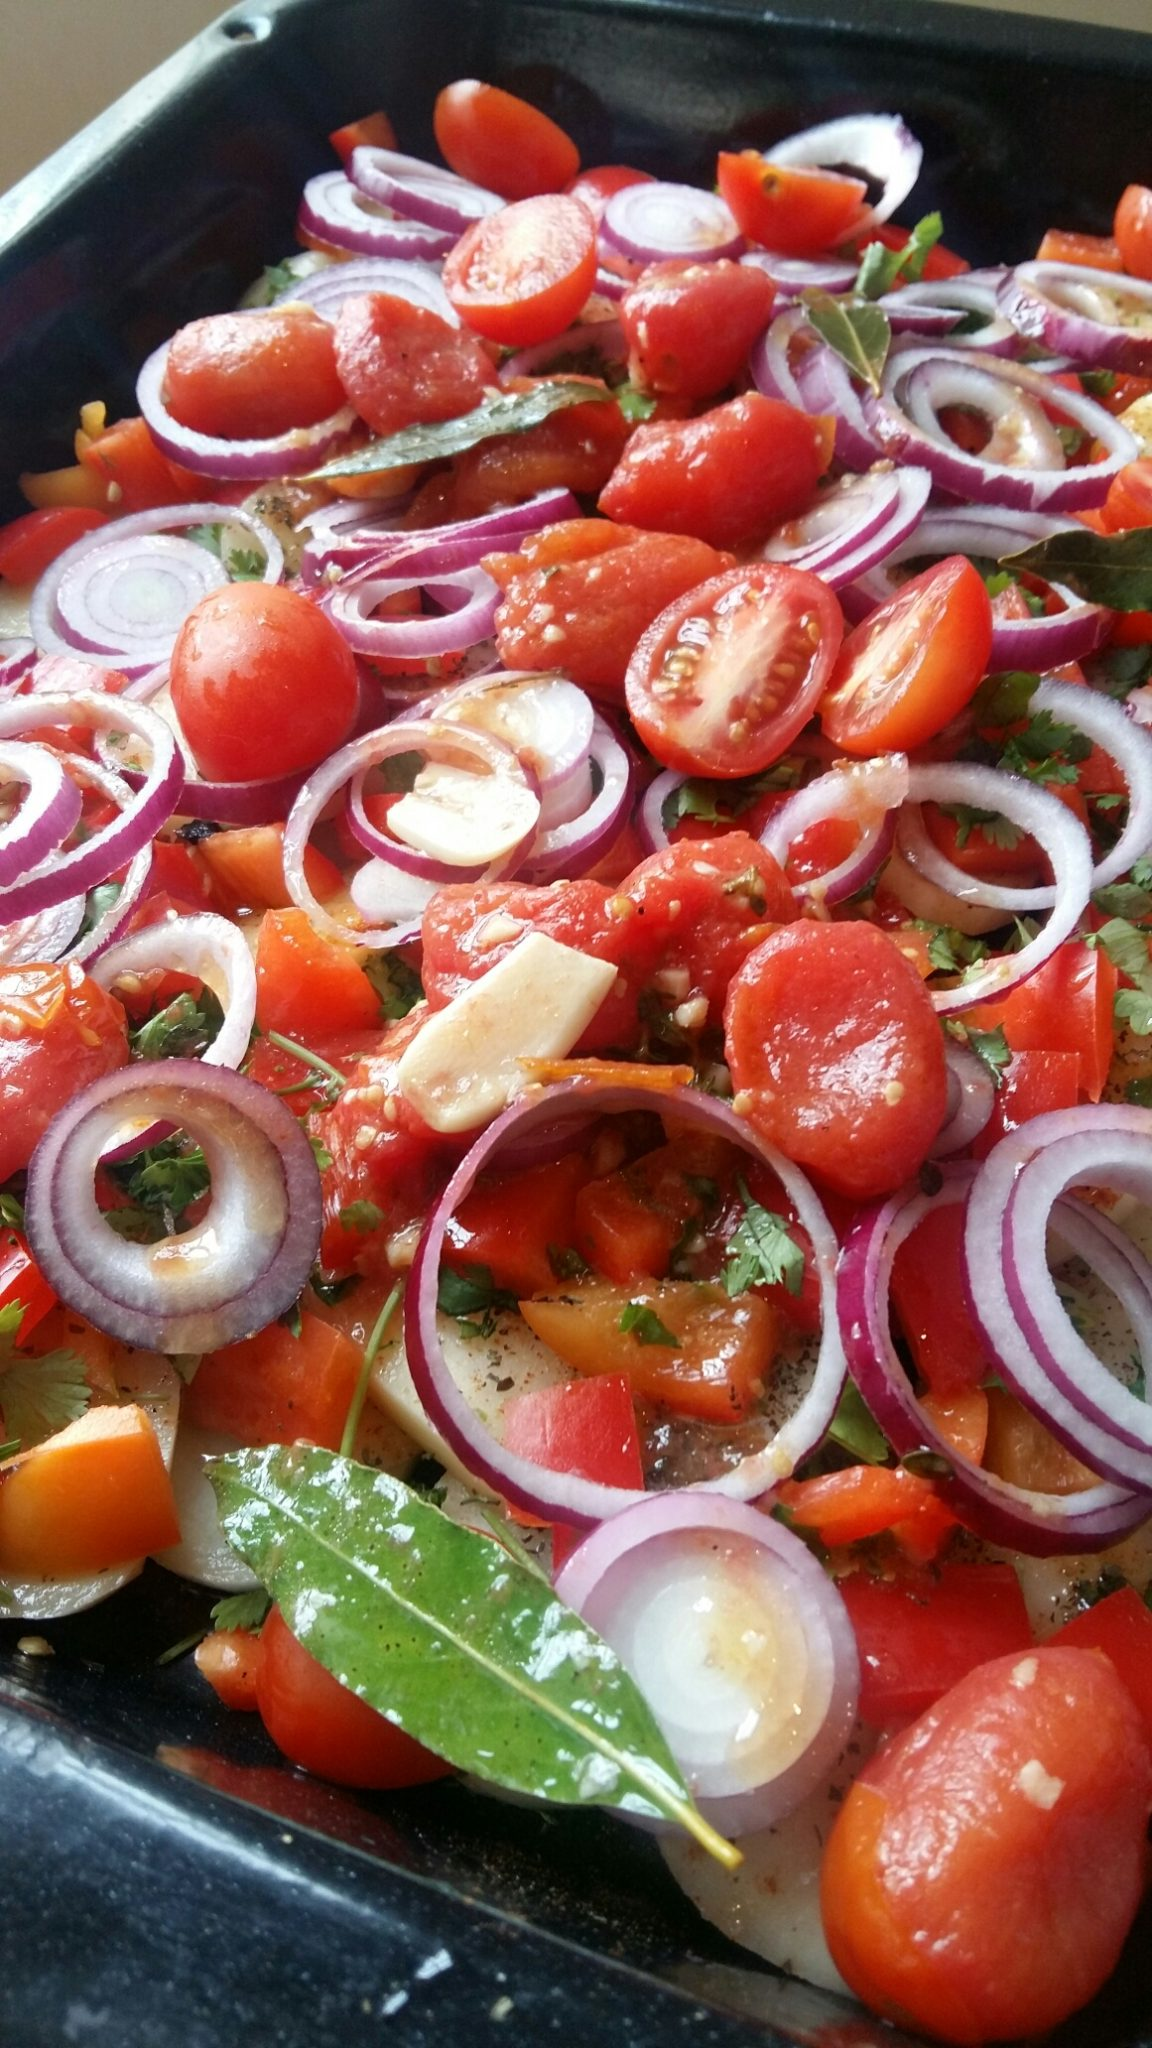 Add halved cherry plum tomatoes and red onion rings plus seasonings